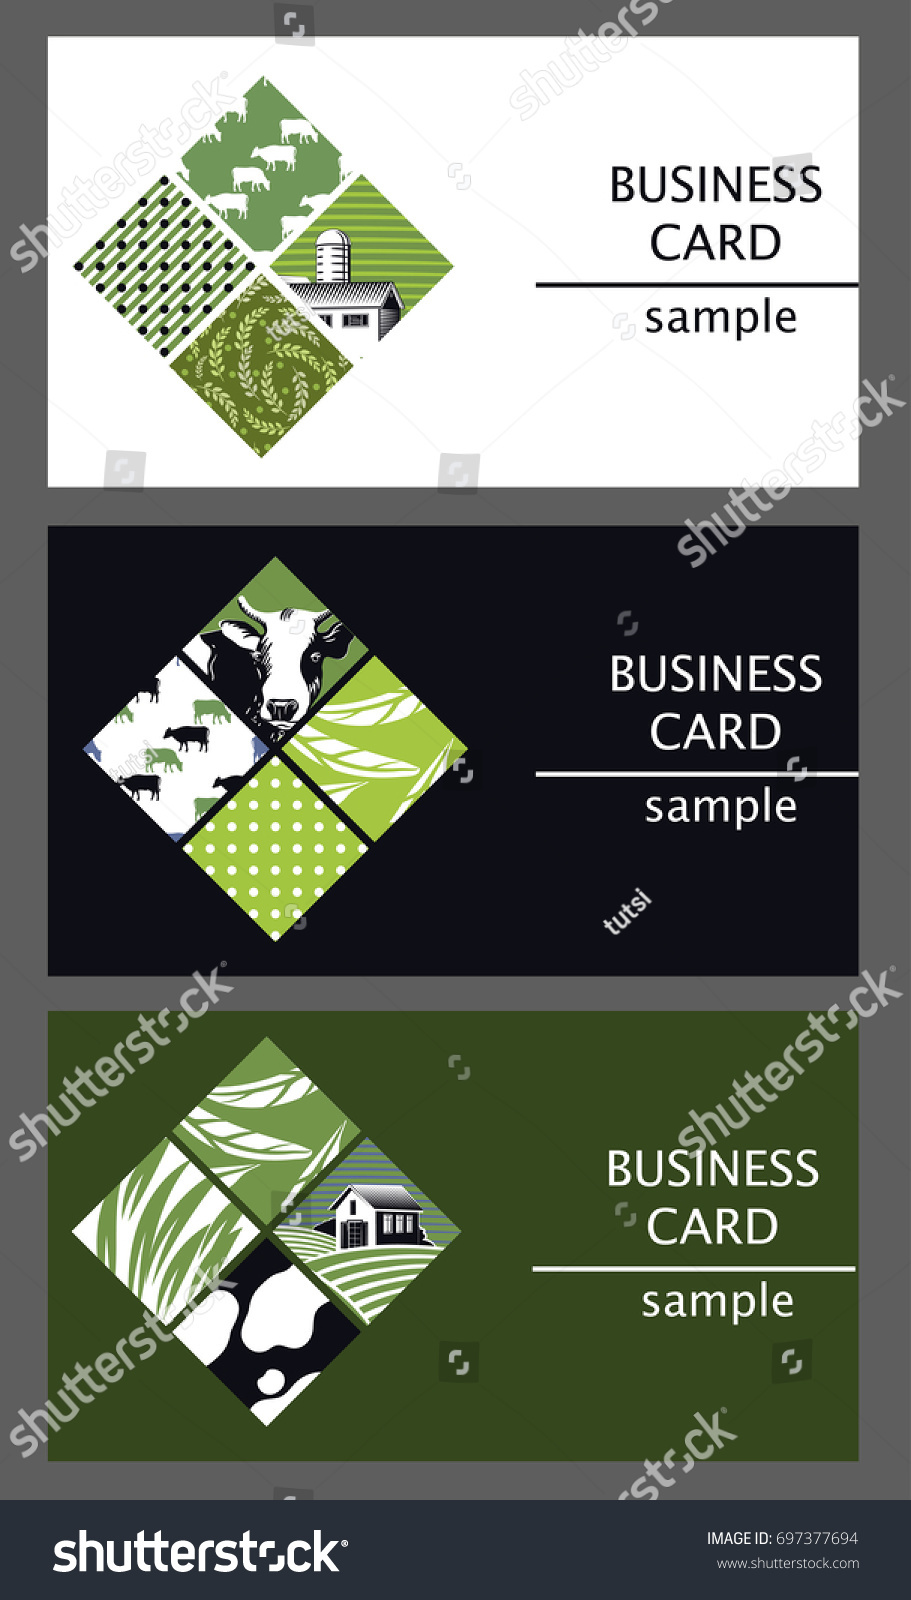 Juice Plus Business Cards Image collections - Free Business Cards